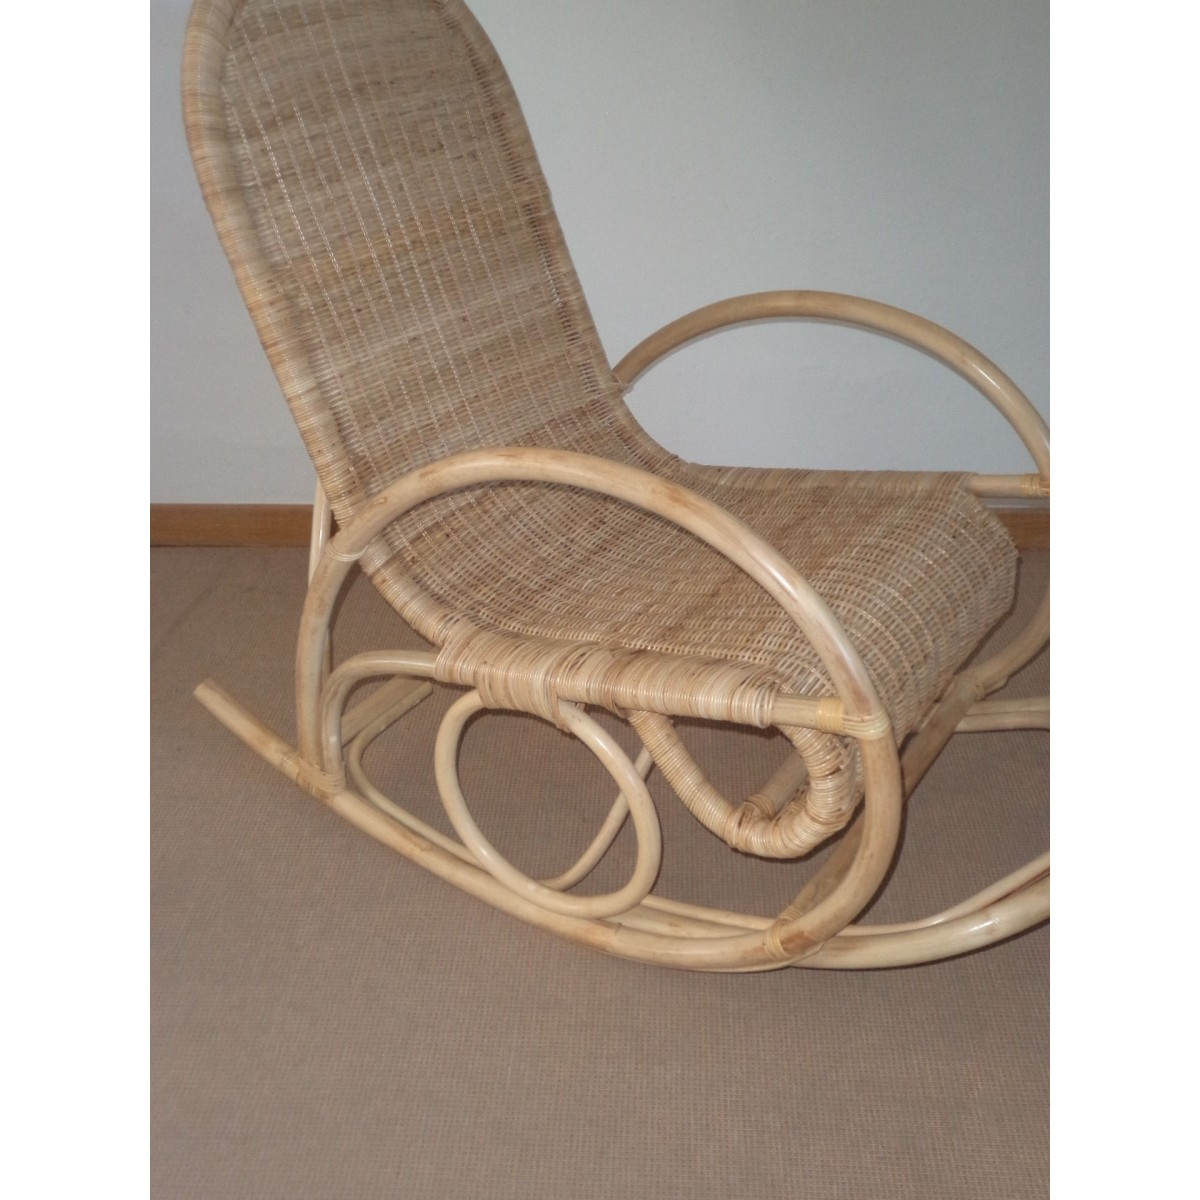 rocking chair en rotin naturel special ext rieur. Black Bedroom Furniture Sets. Home Design Ideas